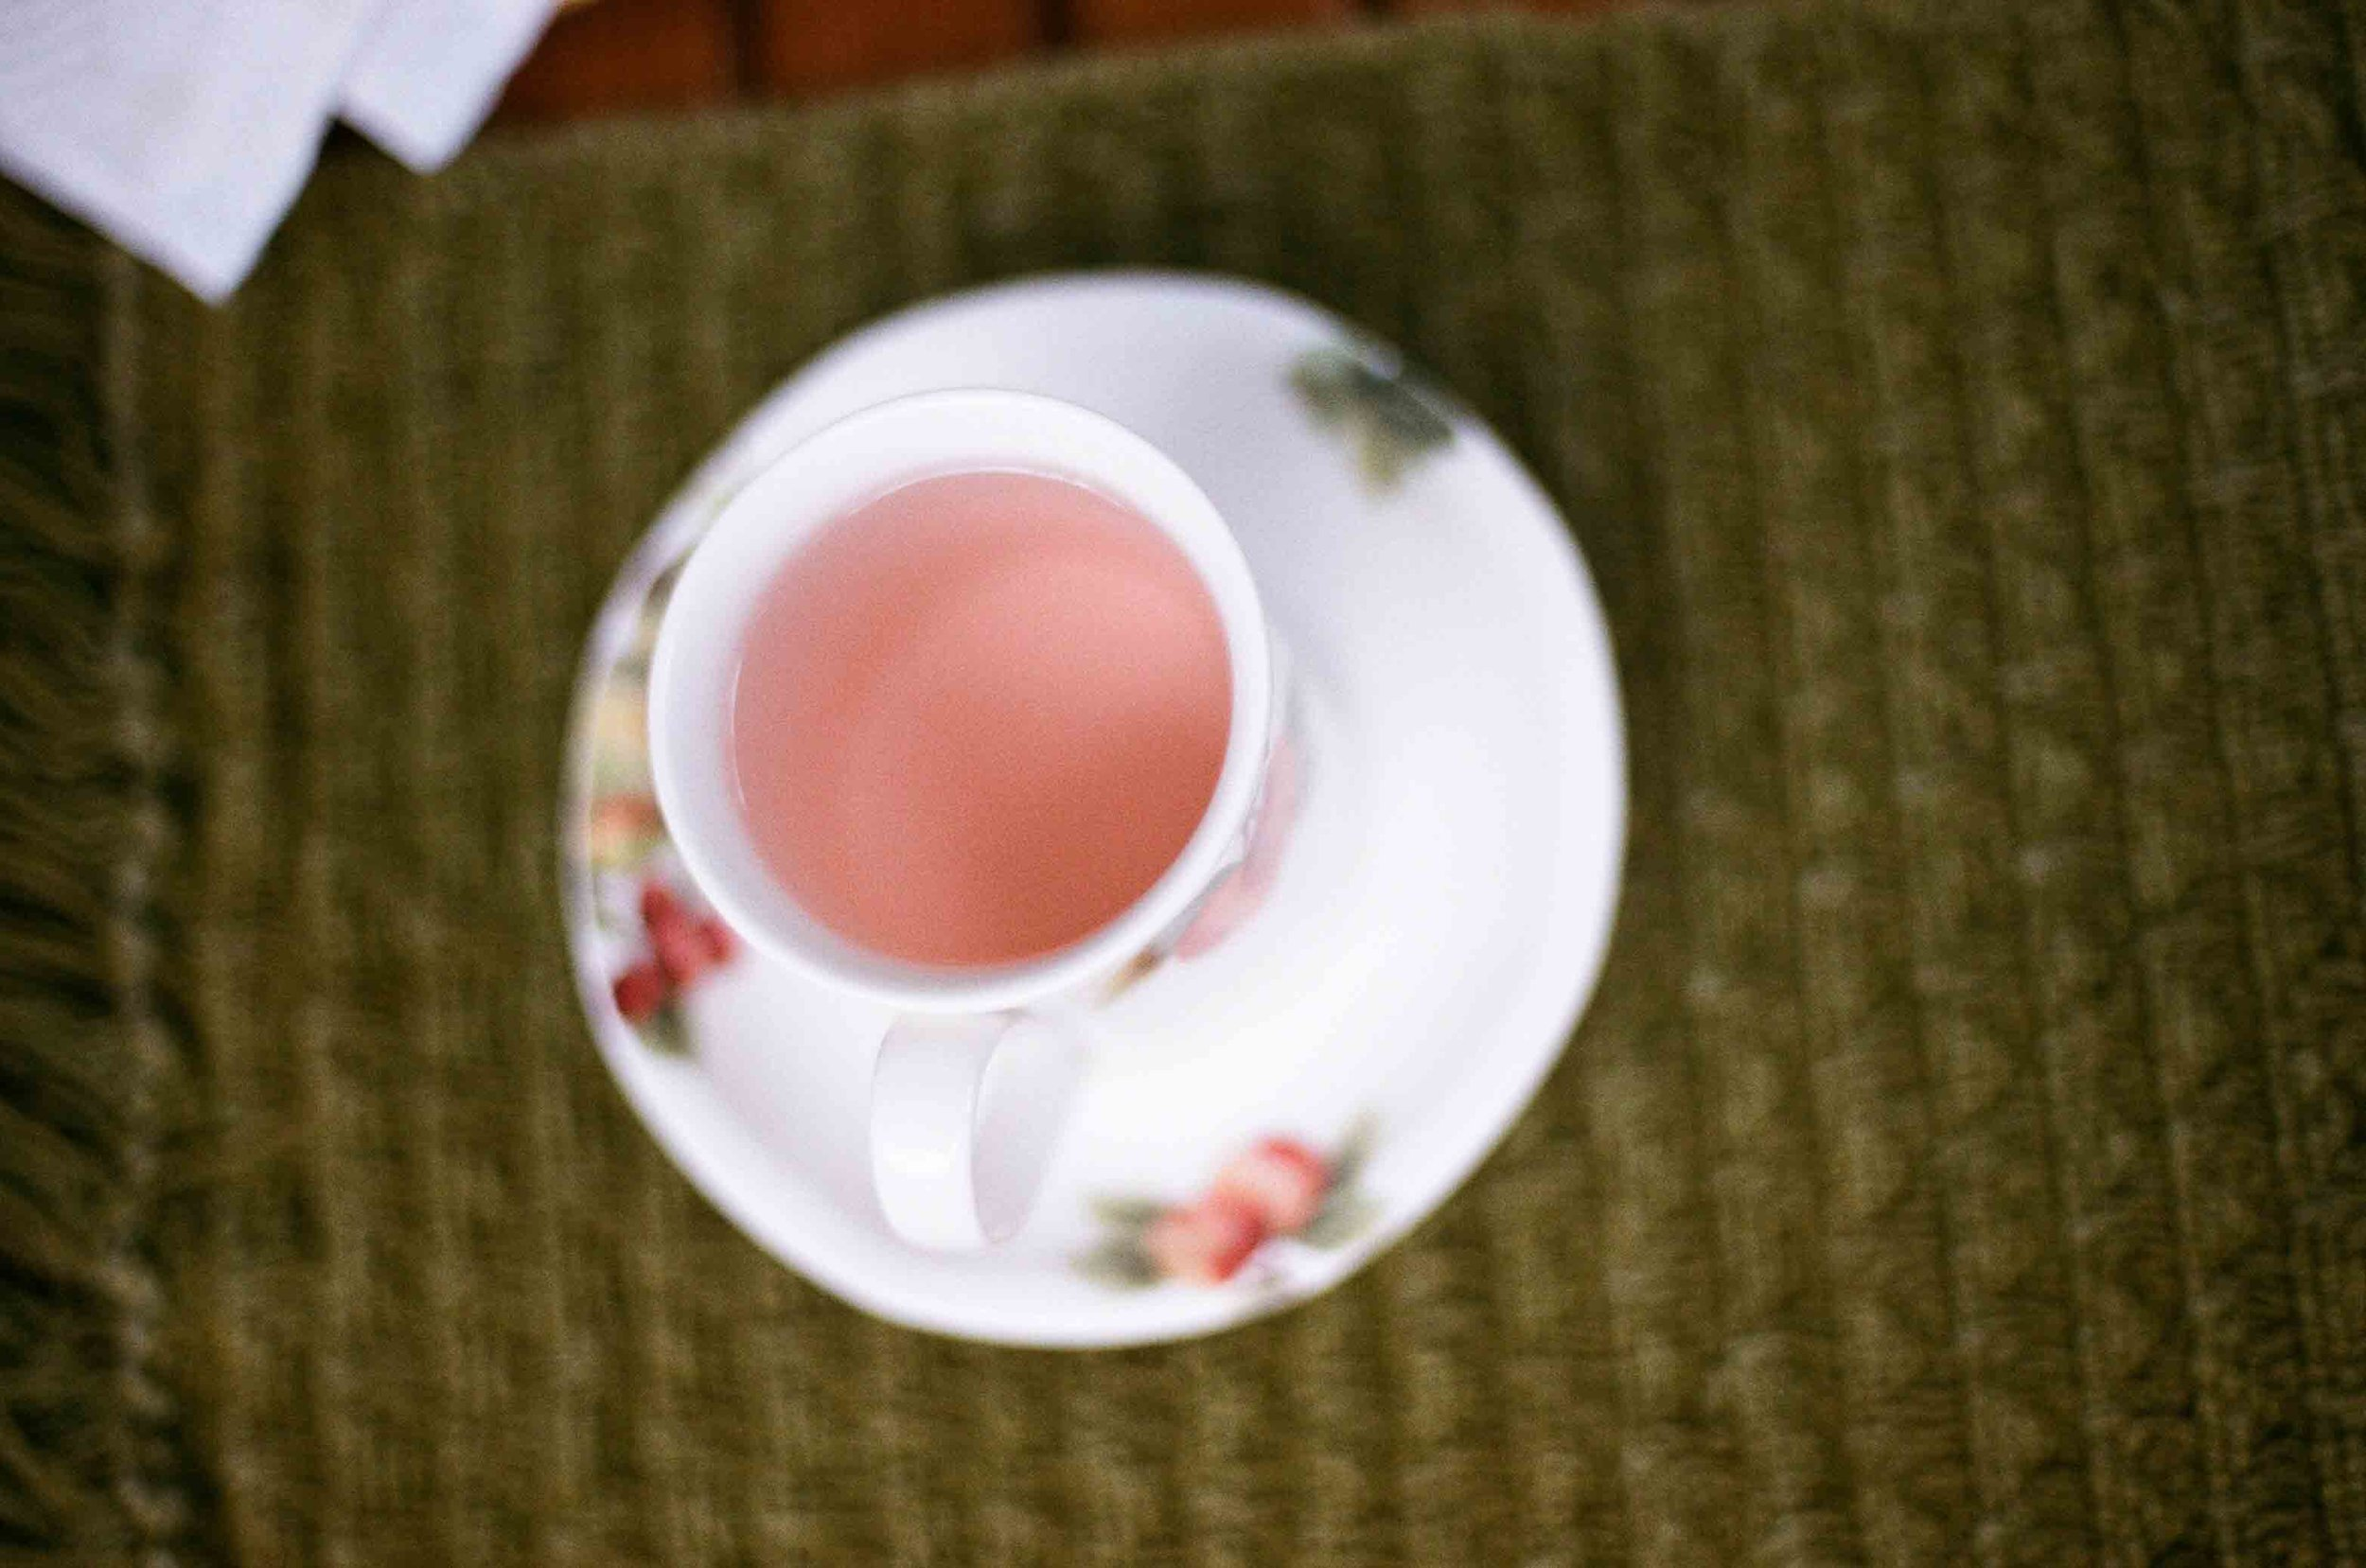 Strawberry tea made by steeping the leaves and adding a strawberry fruit for color.